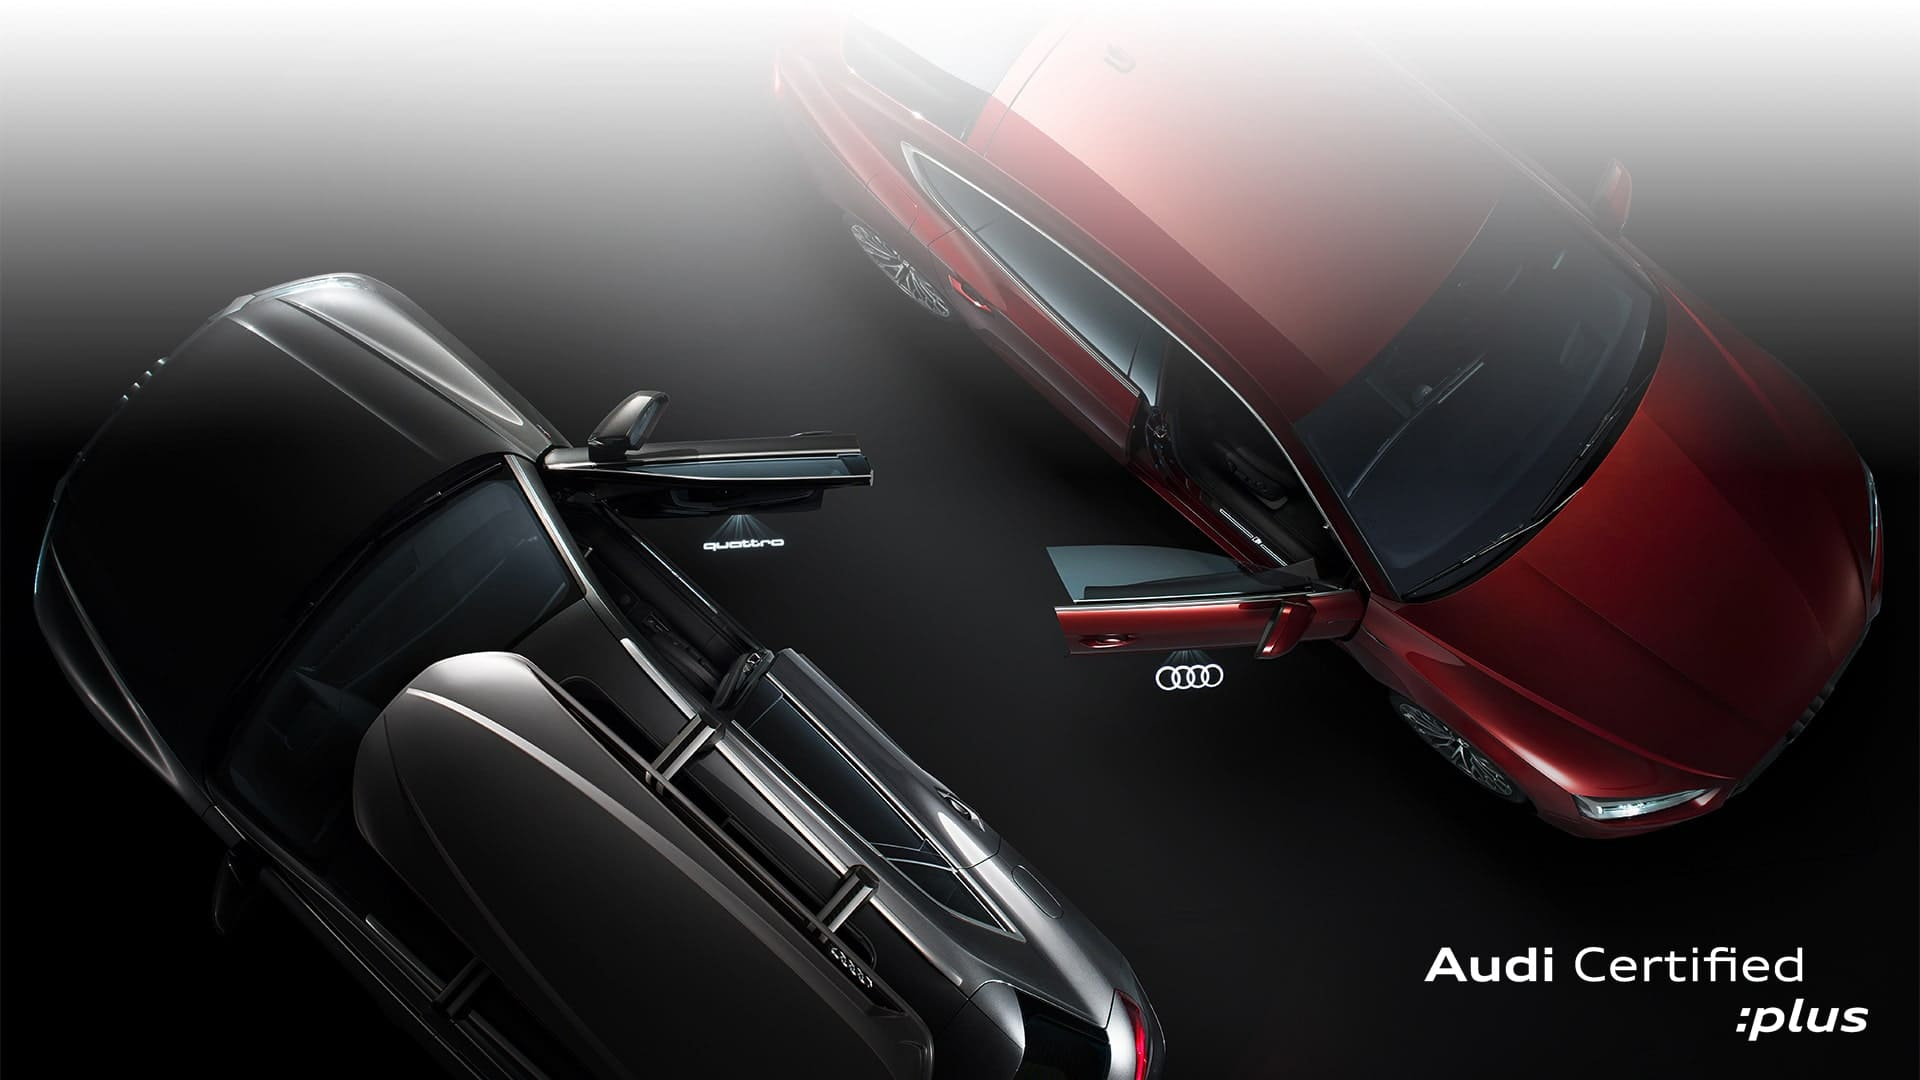 Shop Audi Certified :plus